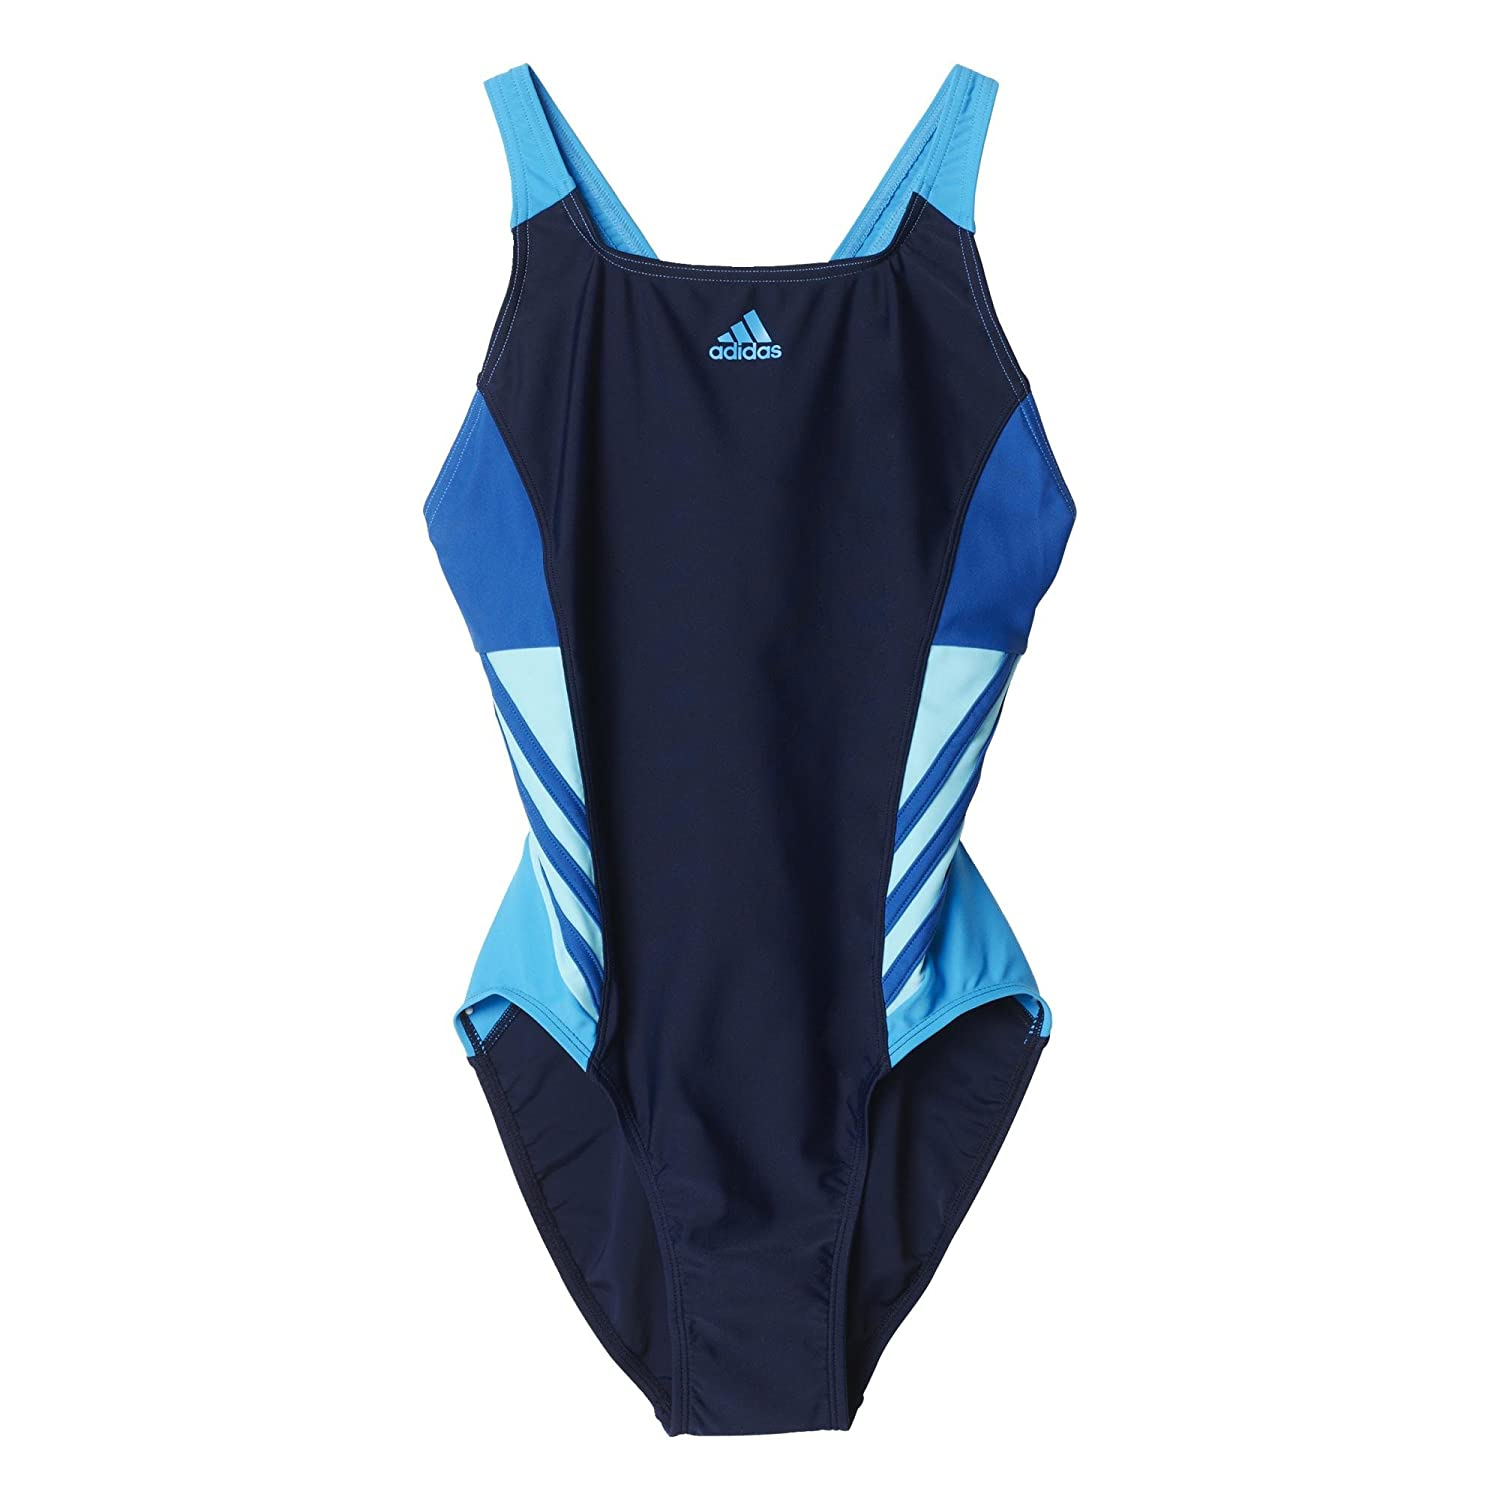 Adidas Women's Inspiration 1-Piece Swimsuit